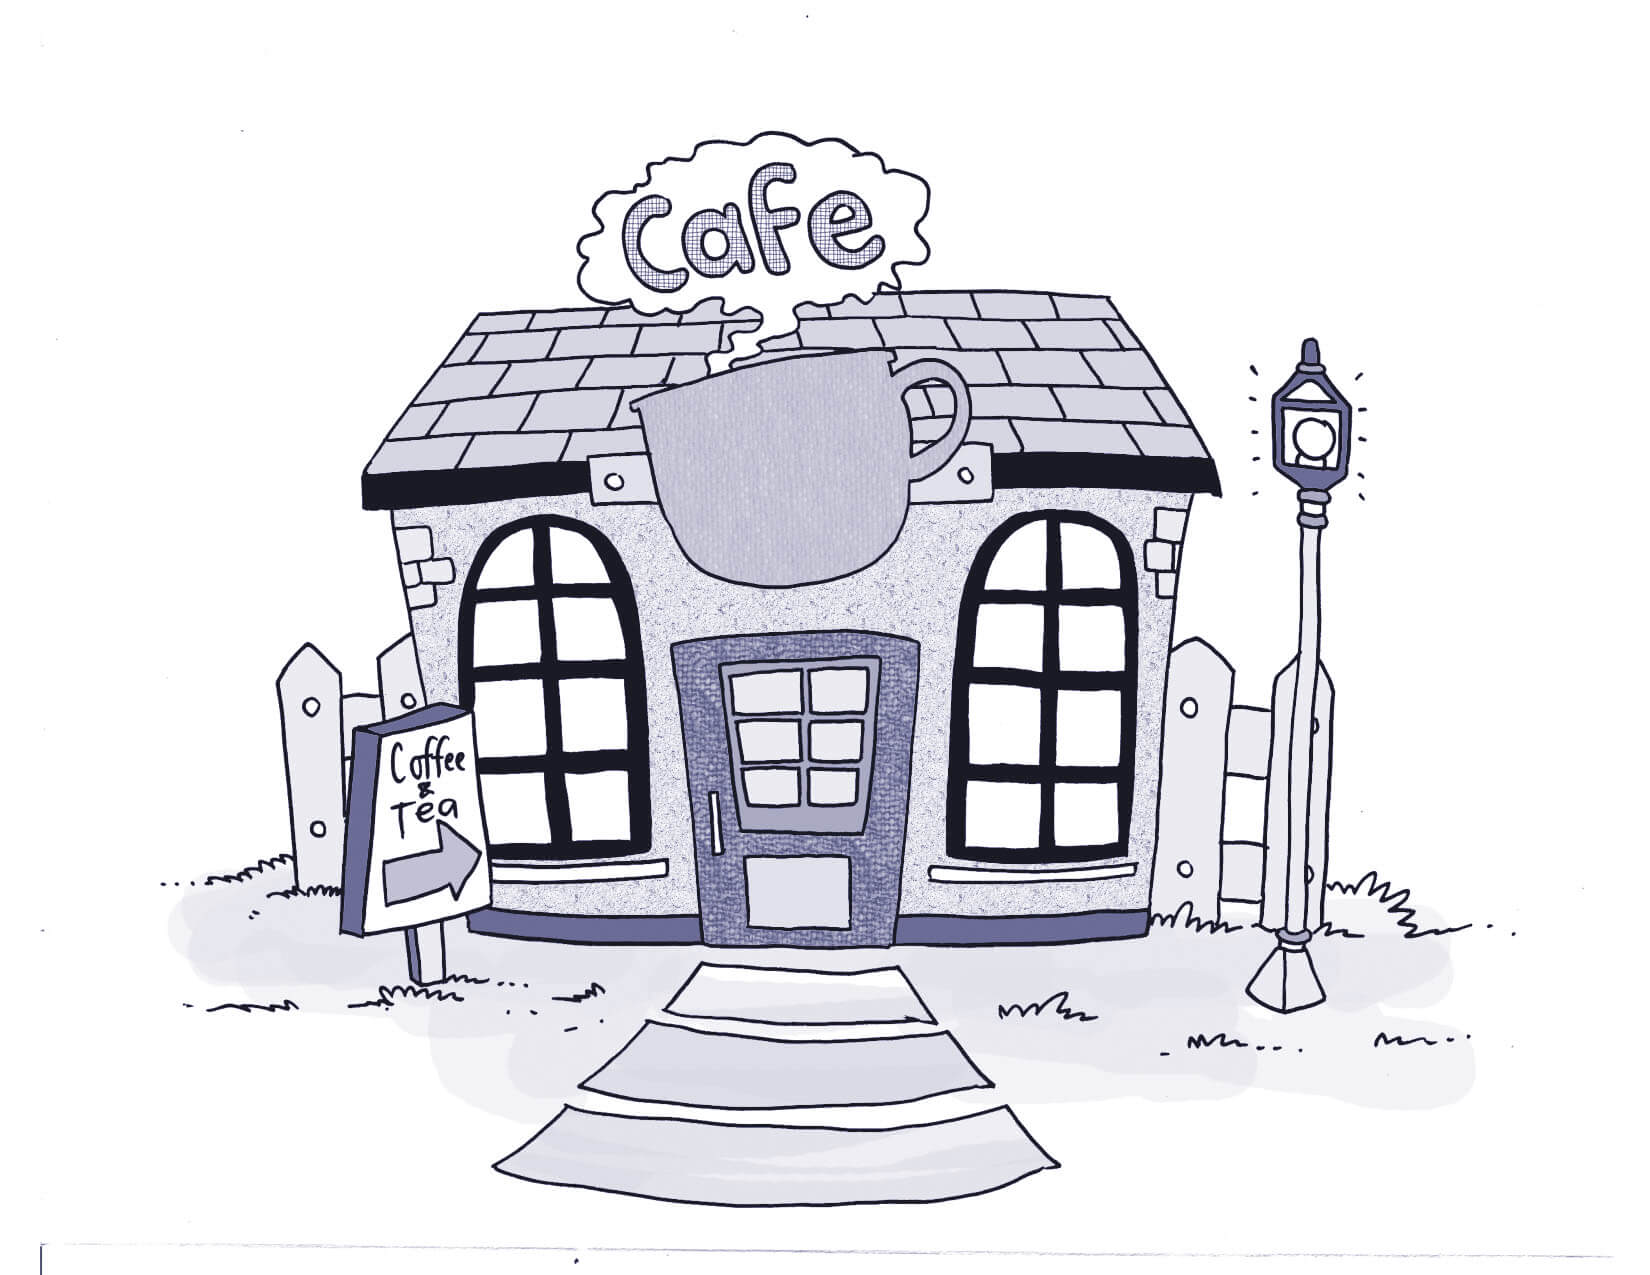 get council approval for cafe